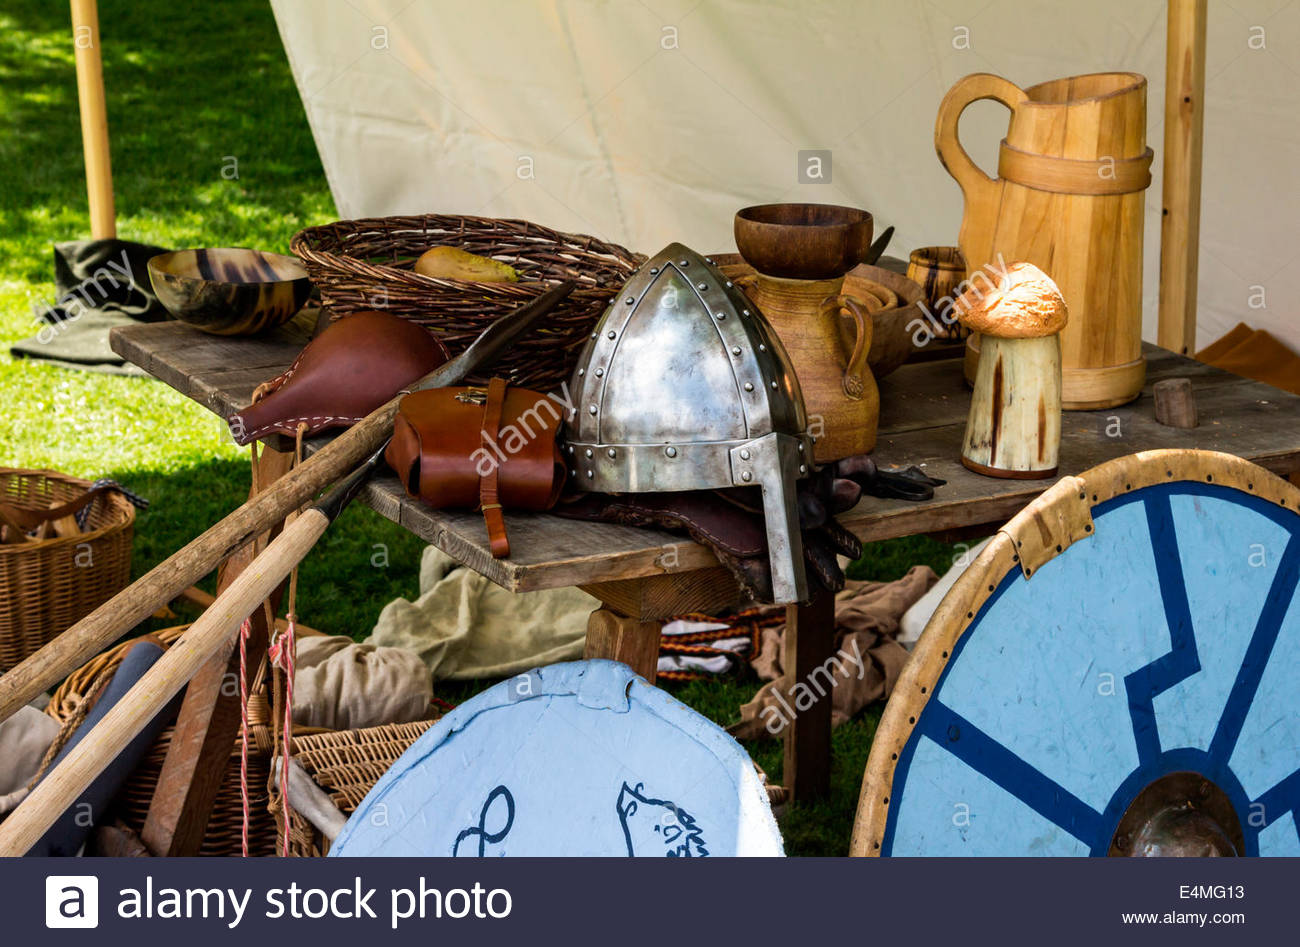 Assortment of Viking weaponry and armour - Stock Image